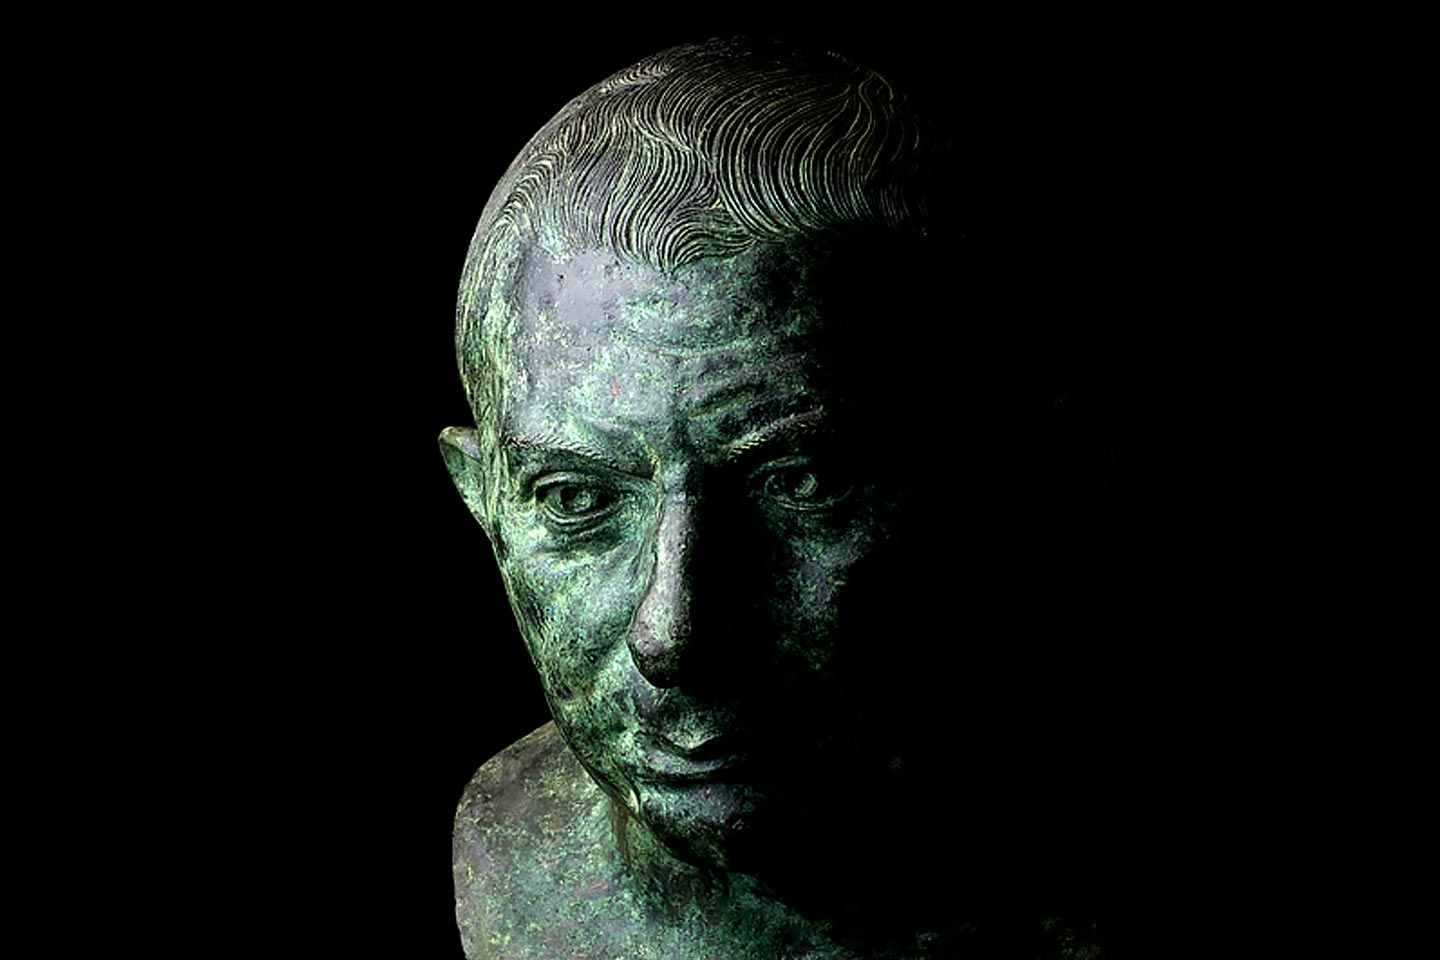 Portrait of Lucius Caecilius Iucundus from Private Collection, Neoclassical Art, 19th Century